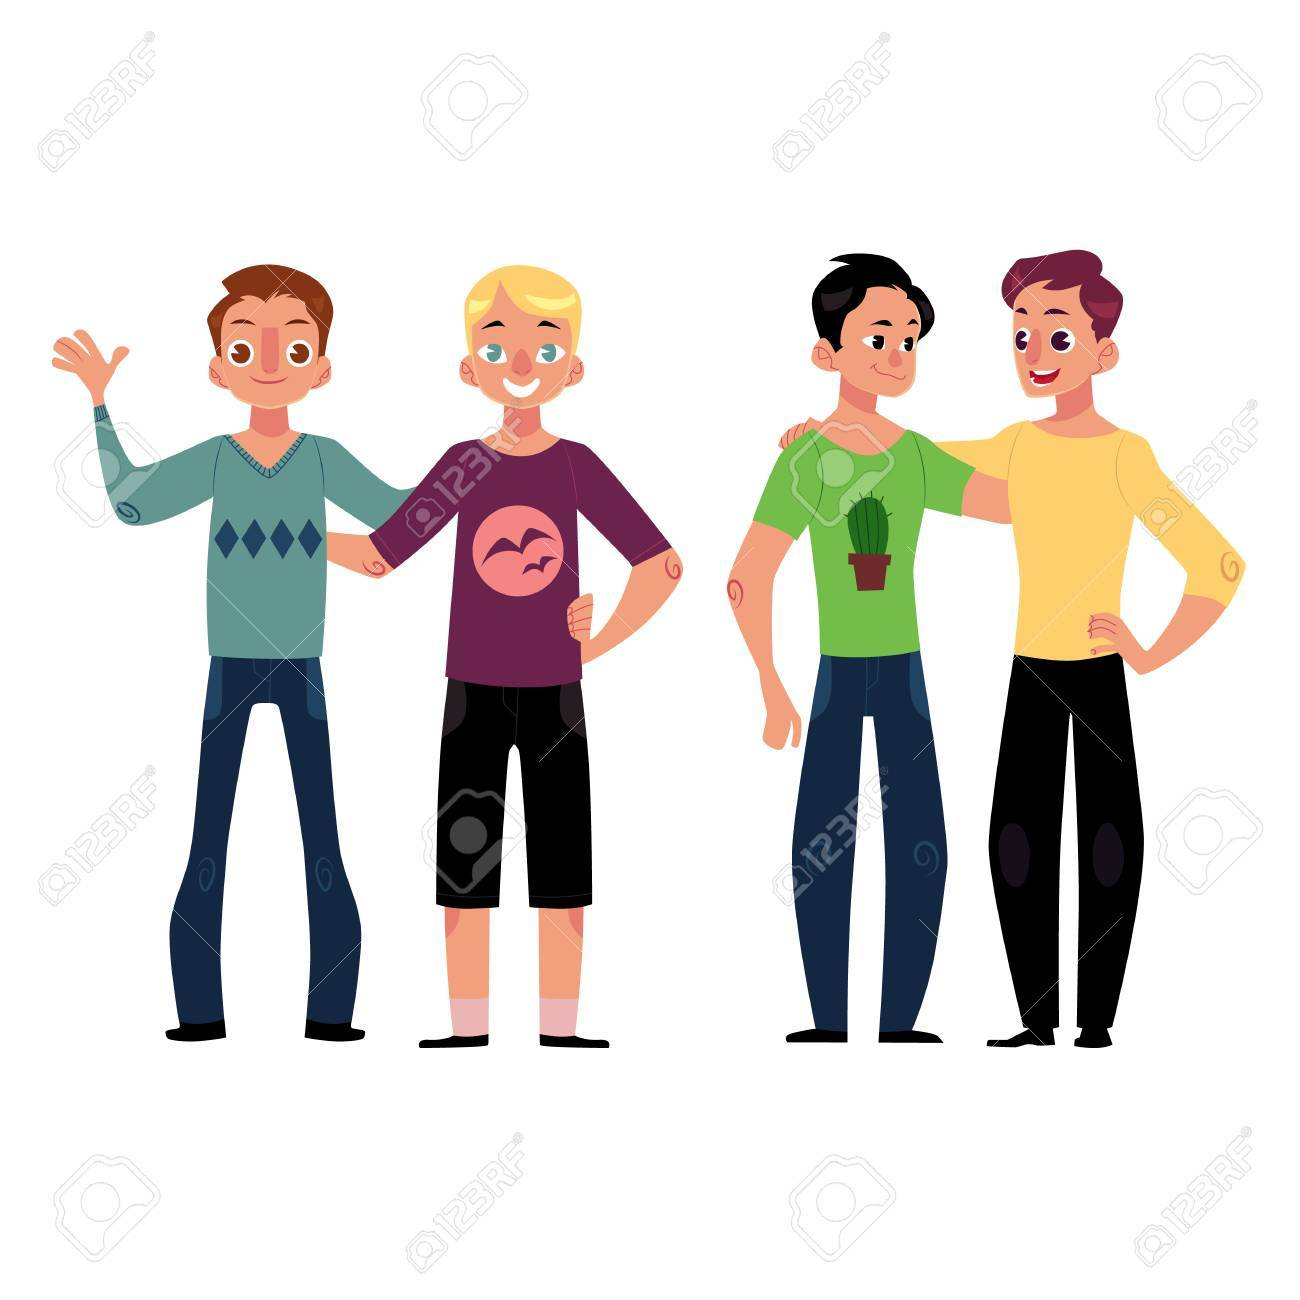 Male Friendship Concept Two Couple Of Boys Men Best Friends Stock Photo Picture And Royalty Free Image Image 82488796